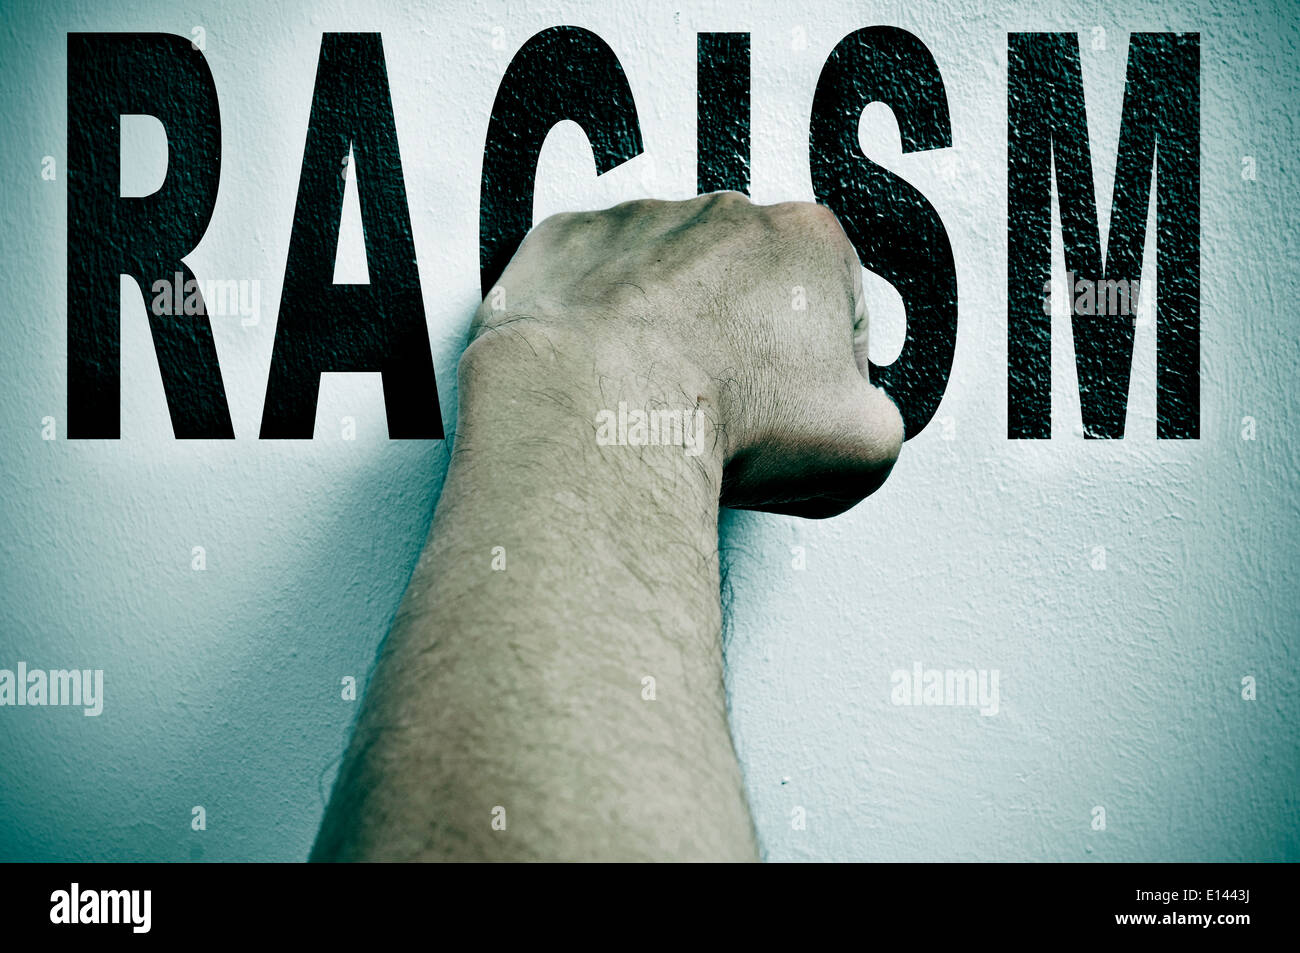 a man punching the word racism, depicting the concept of the fight against racism - Stock Image